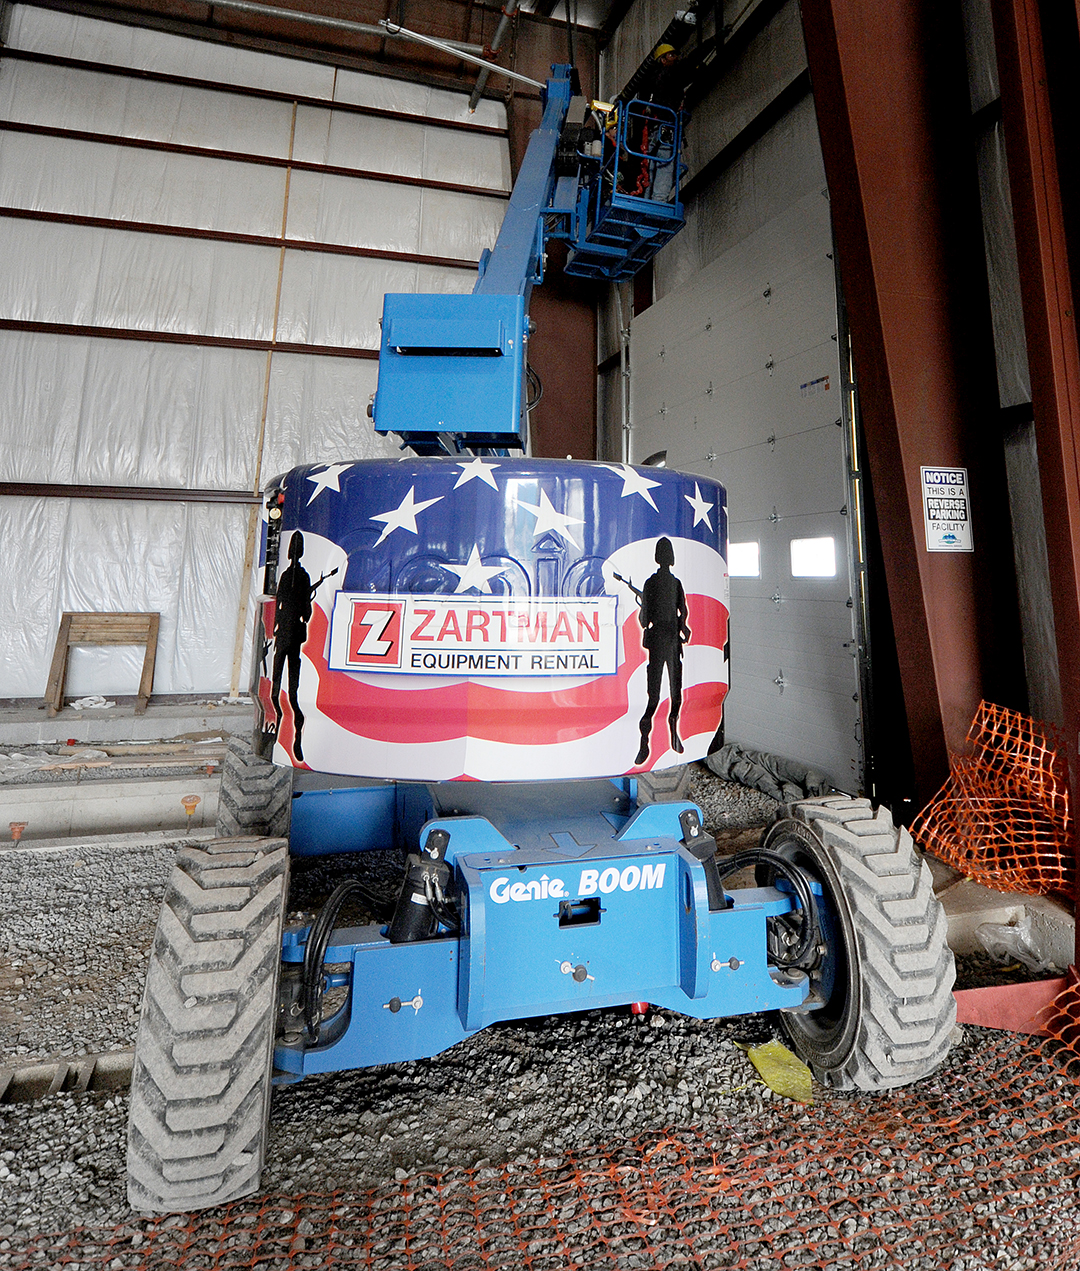 Genie Z45-25JRT articulating boom lift with patriotic wrap